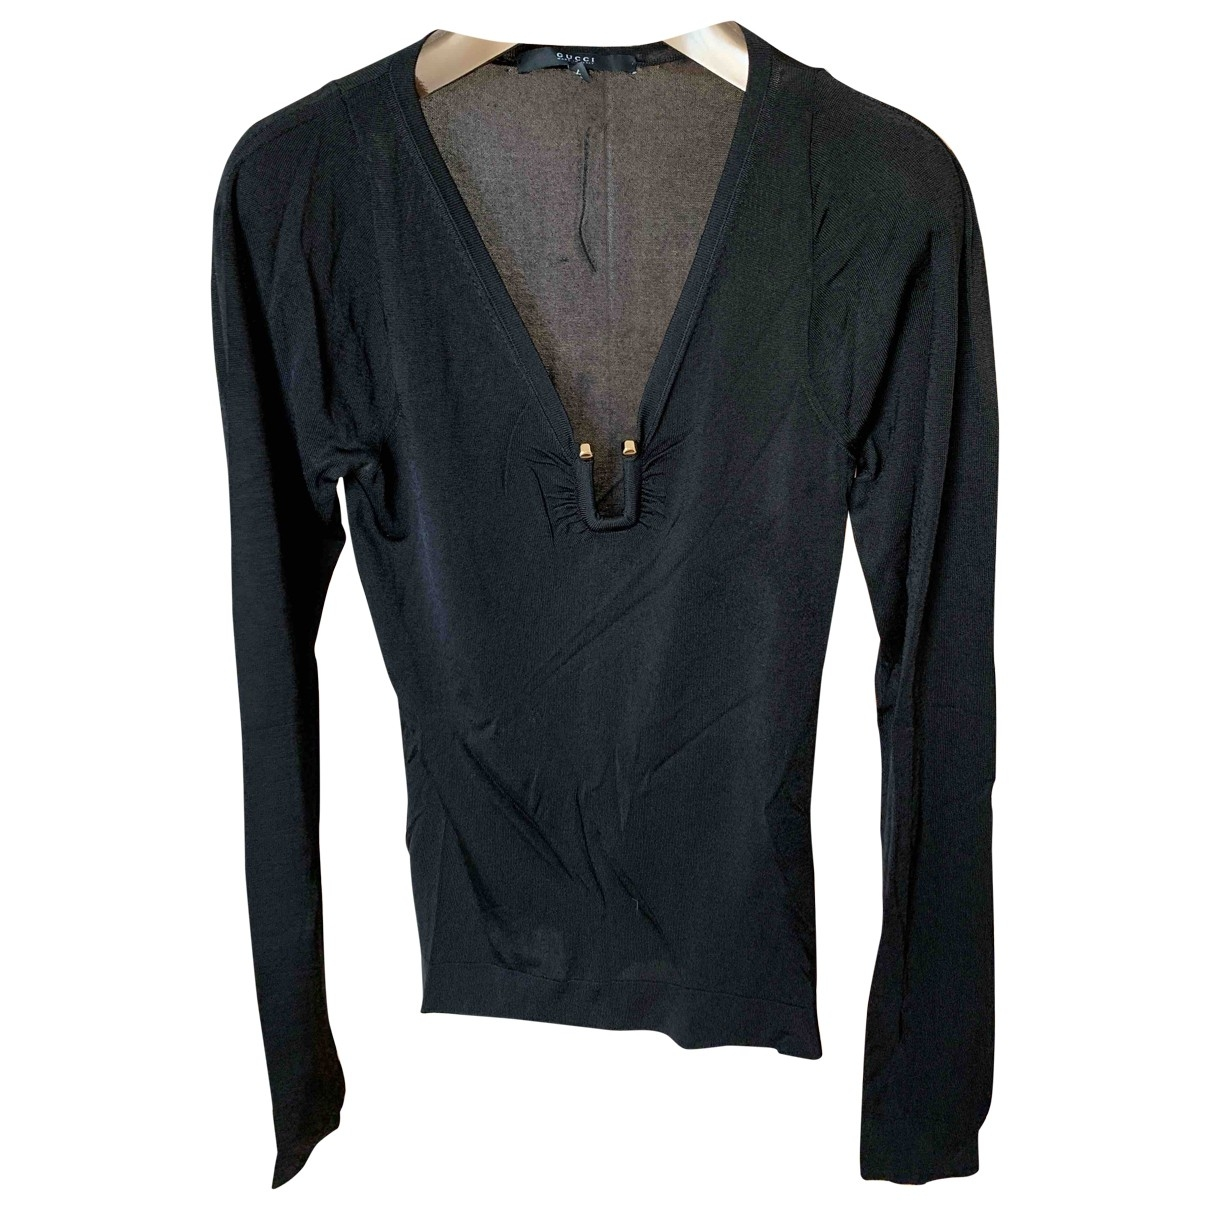 Gucci \N Black  top for Women XS International